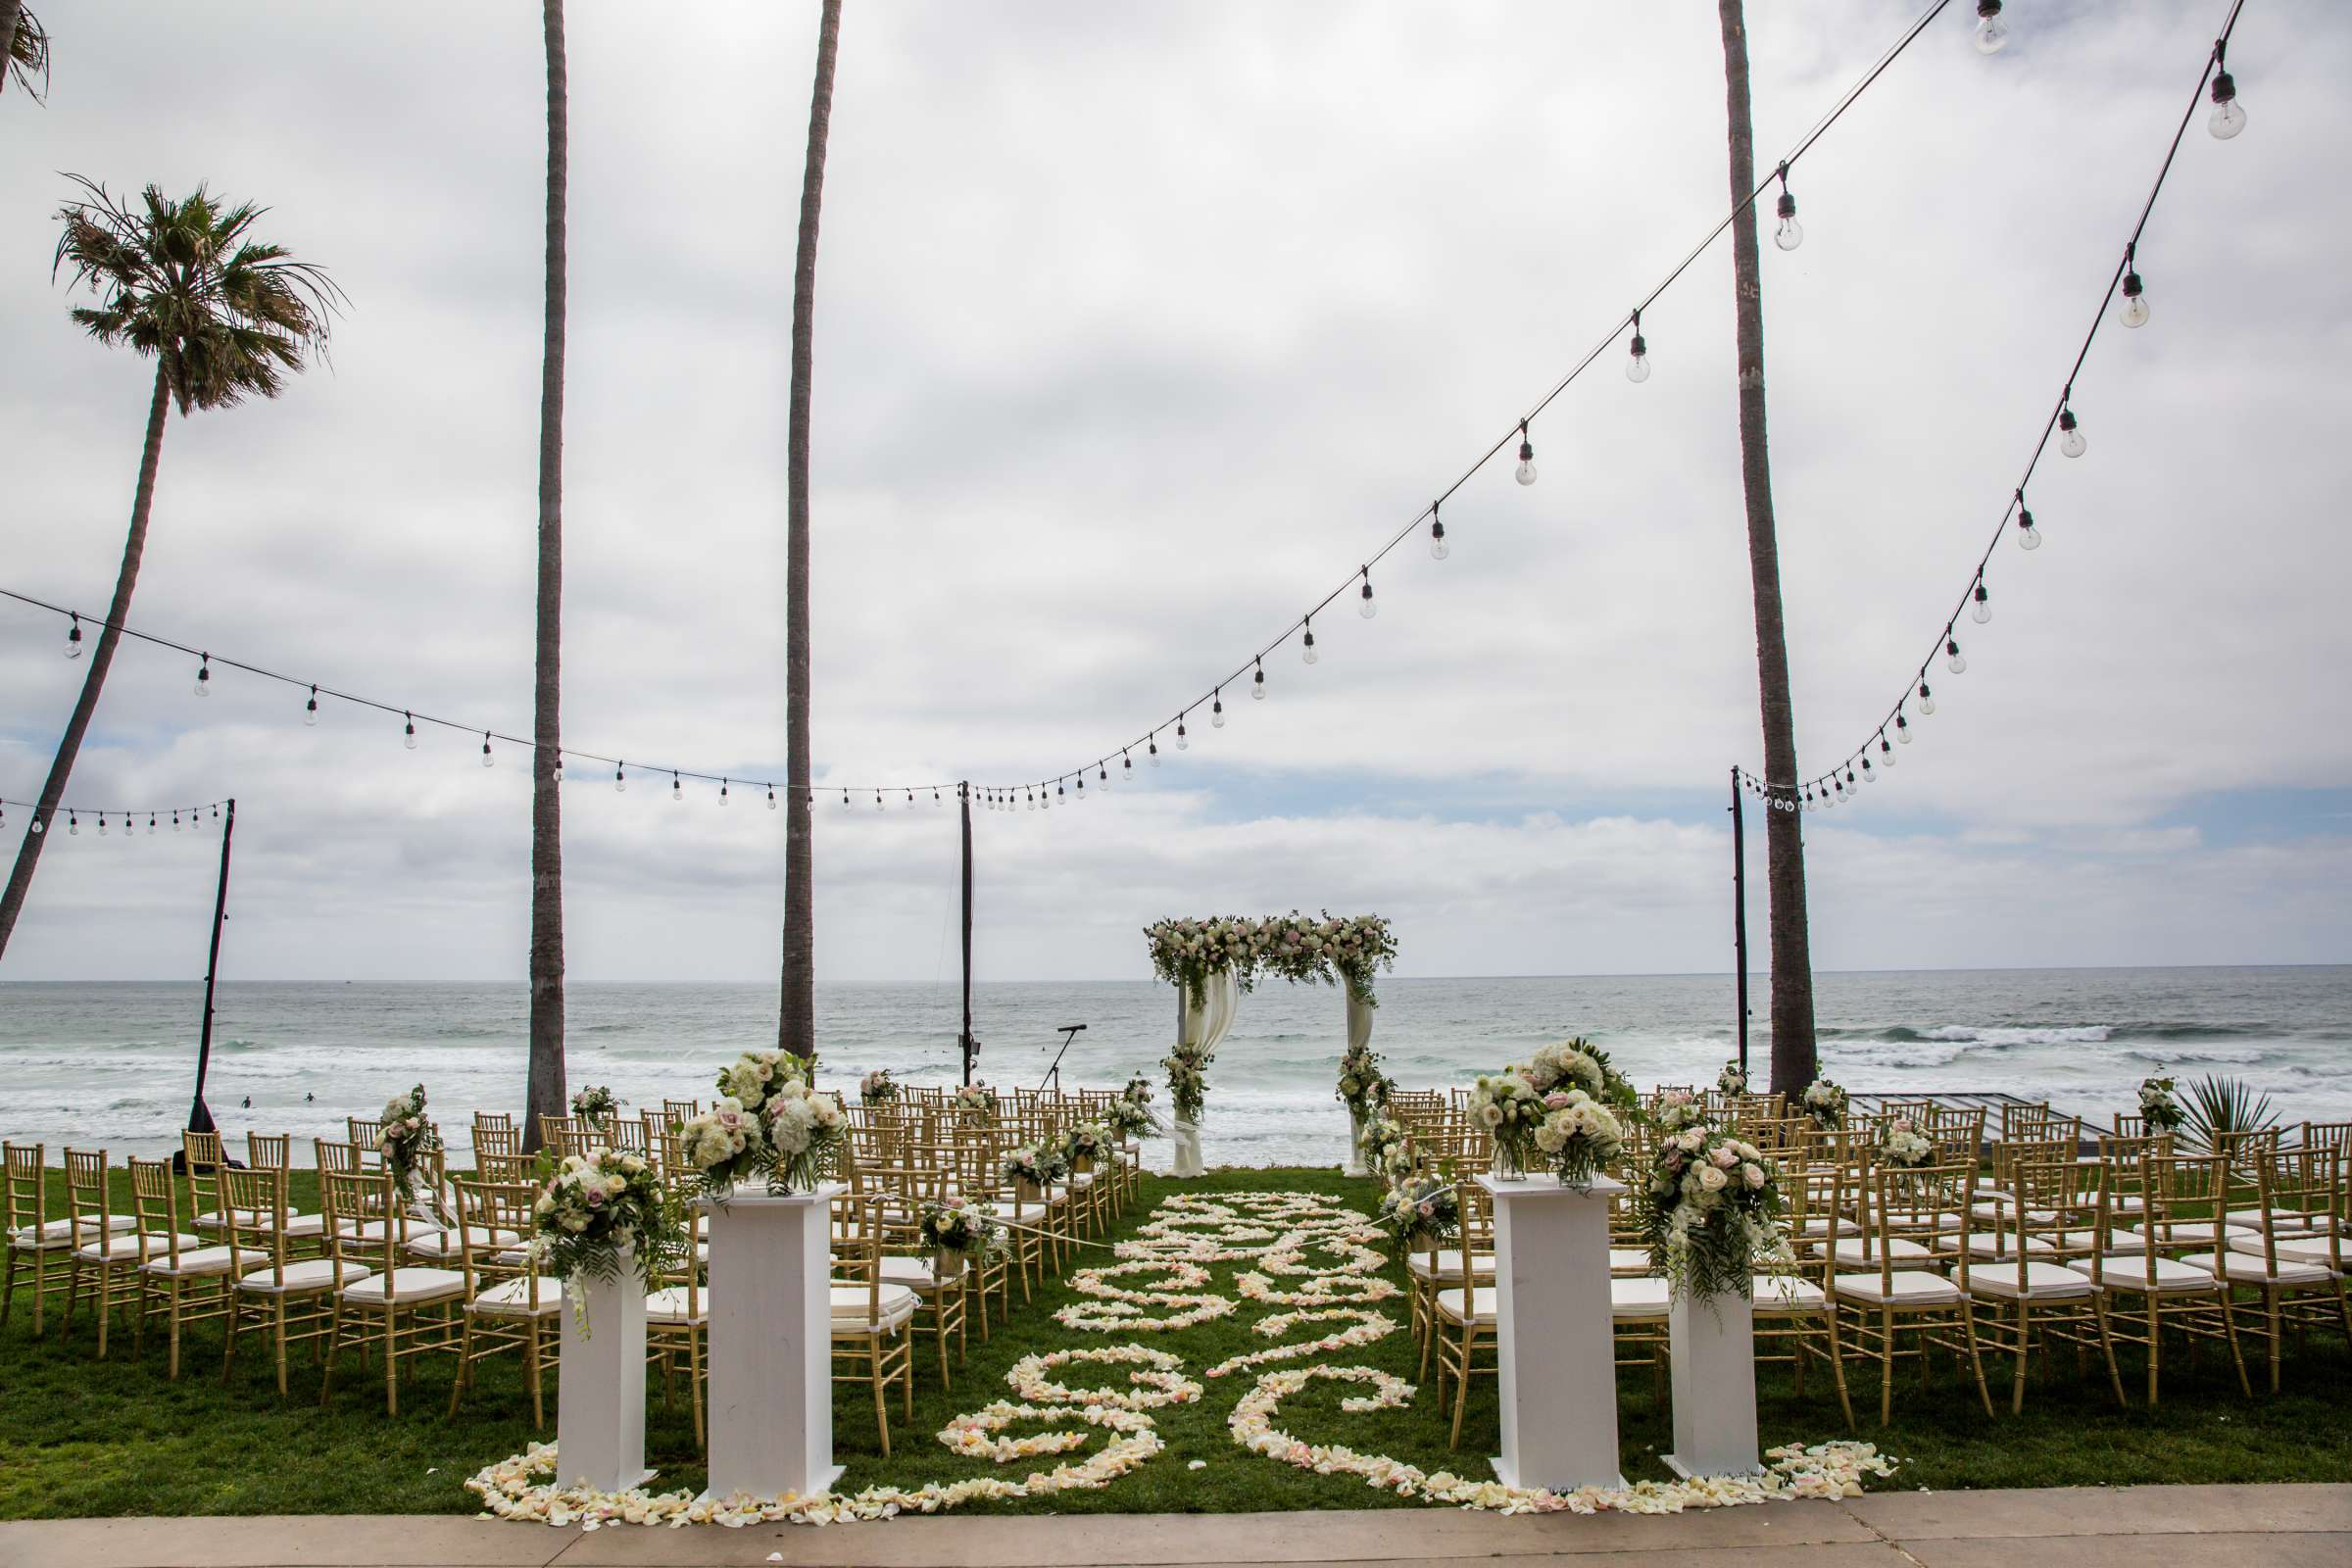 Scripps Seaside Forum Wedding coordinated by Lavish Weddings, Cindy and Justin Wedding Photo #381911 by True Photography